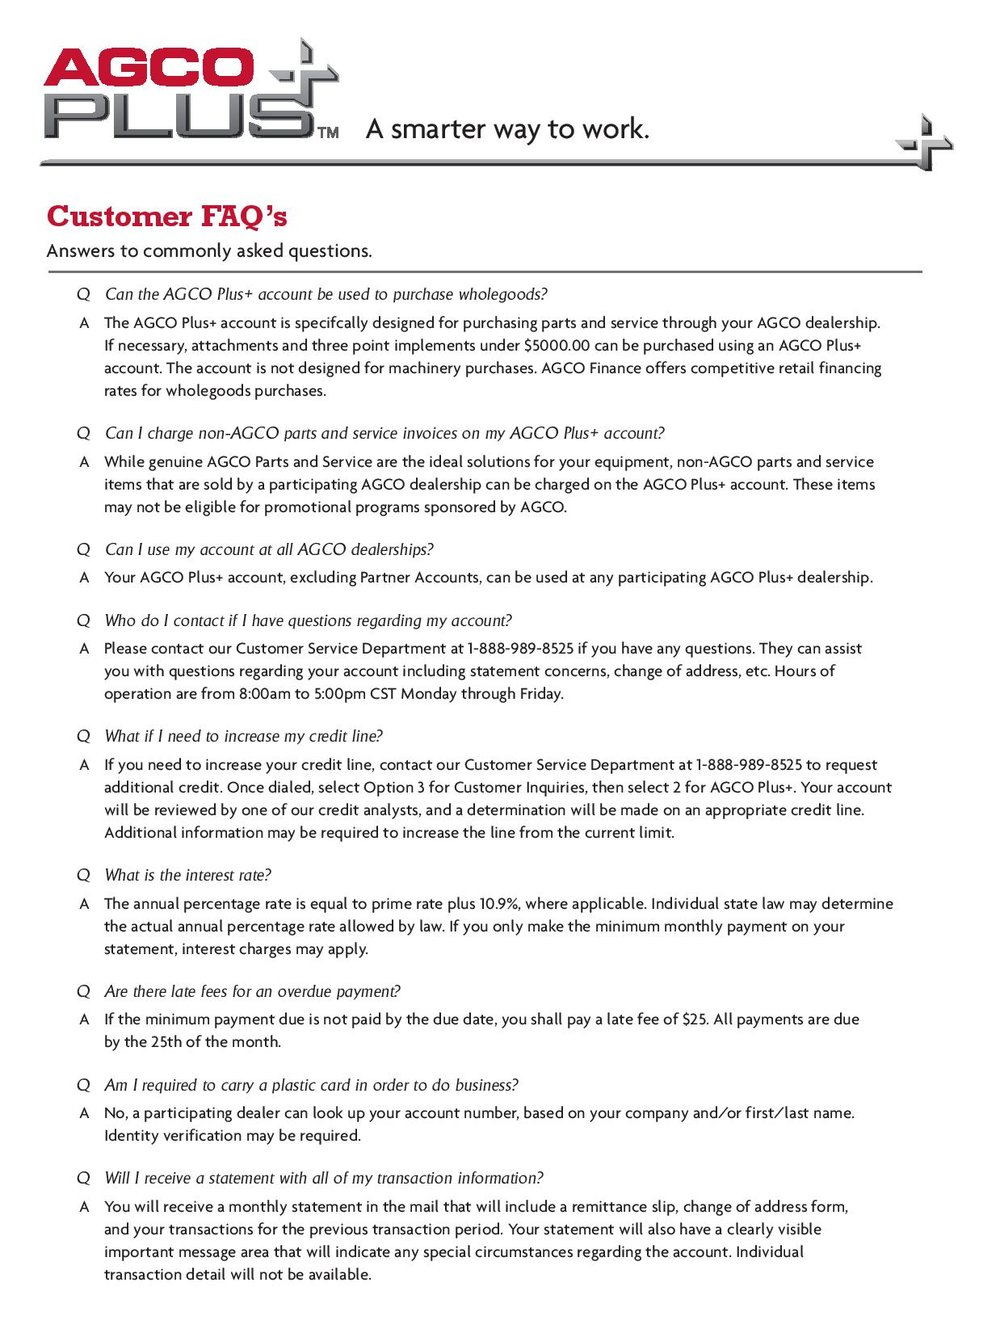 agco plus pentagon farm centre frequently asked questions